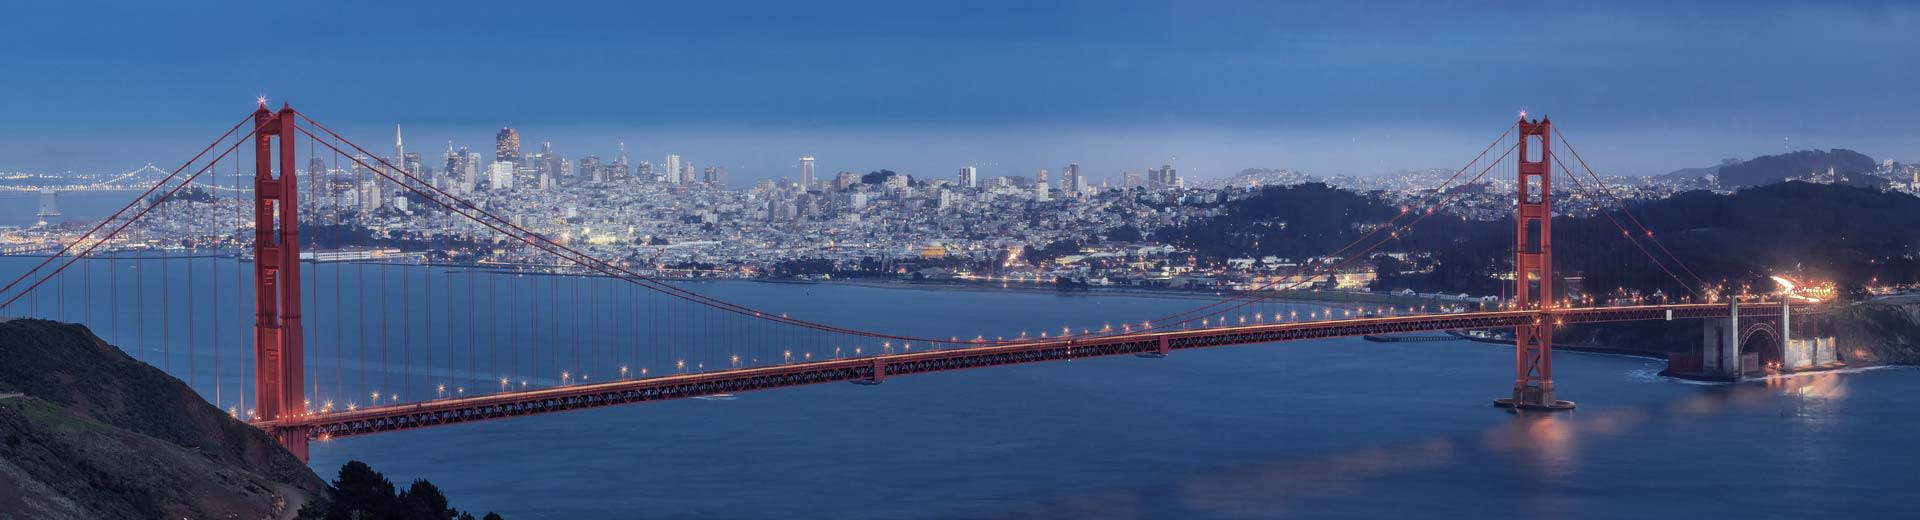 With San Francisco in the background, the world-famous Golden Gate Bridge stretches across the bay